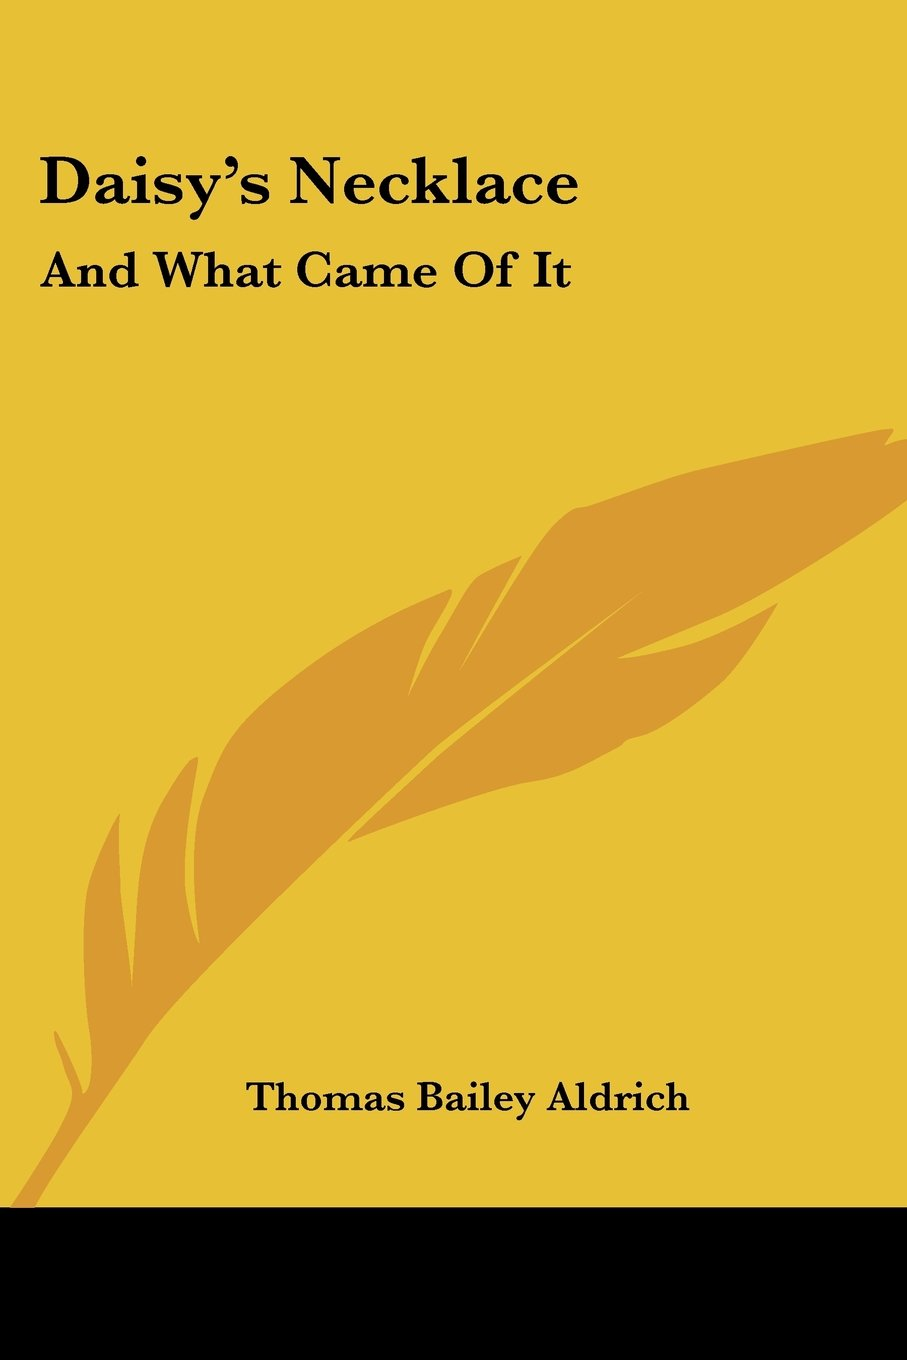 Daisy's Necklace: And What Came Of It PDF